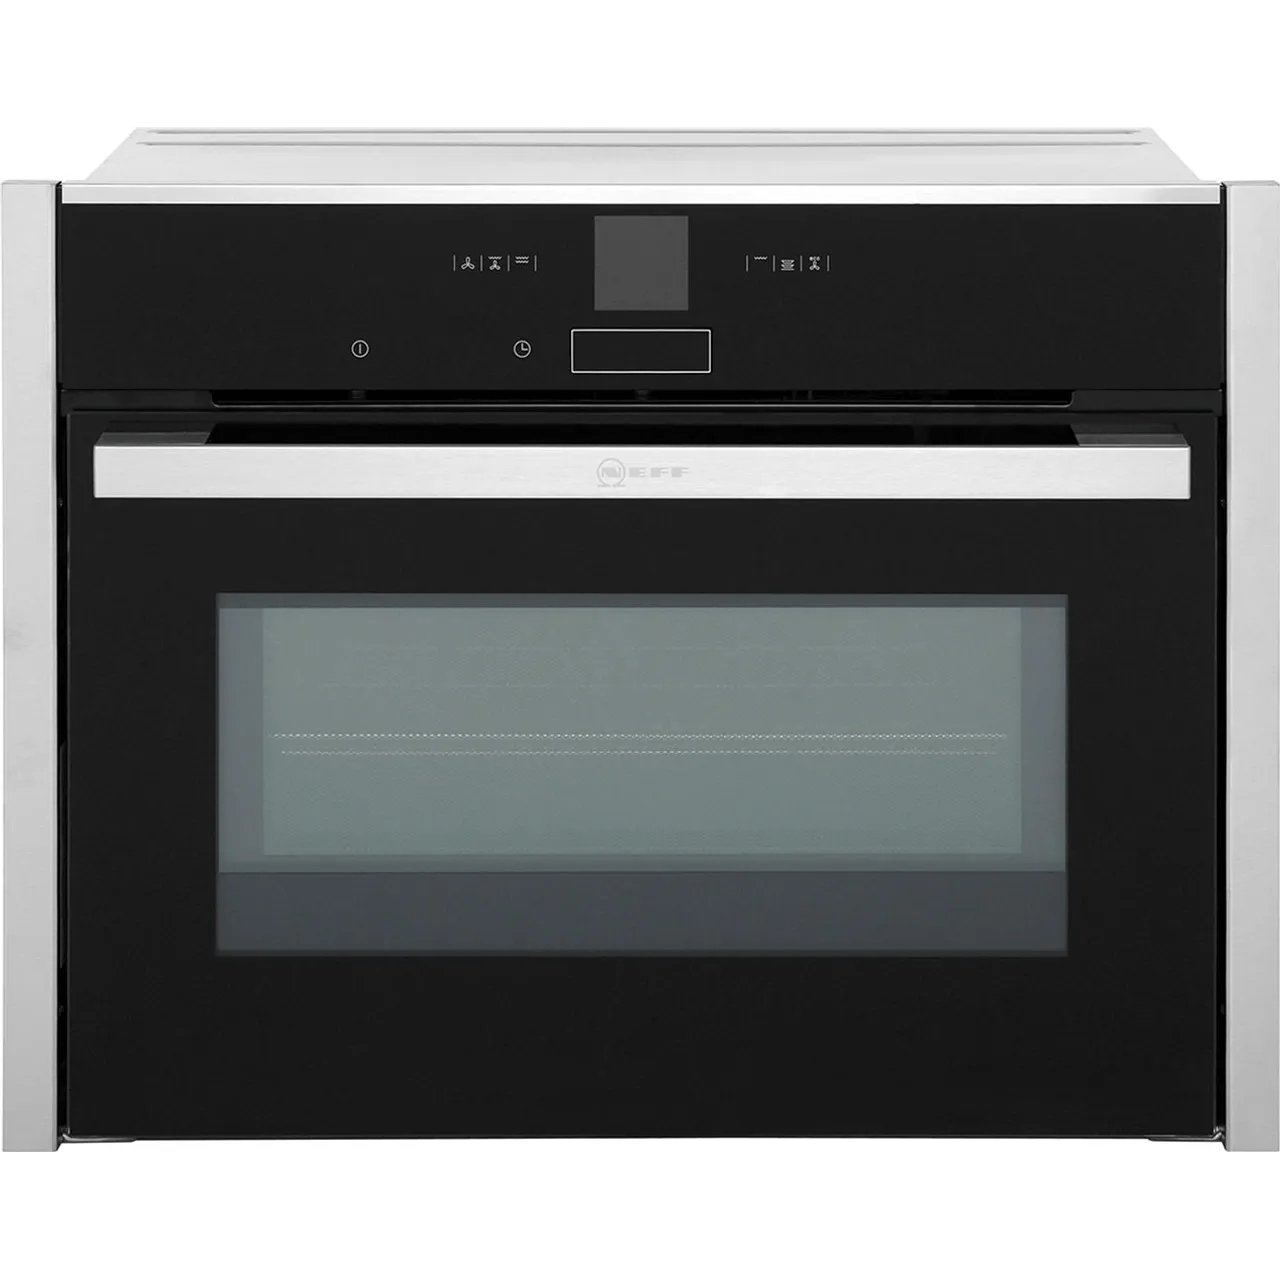 neff n70 c17mr02n0b built in compact electric single oven with microwave function stainless steel